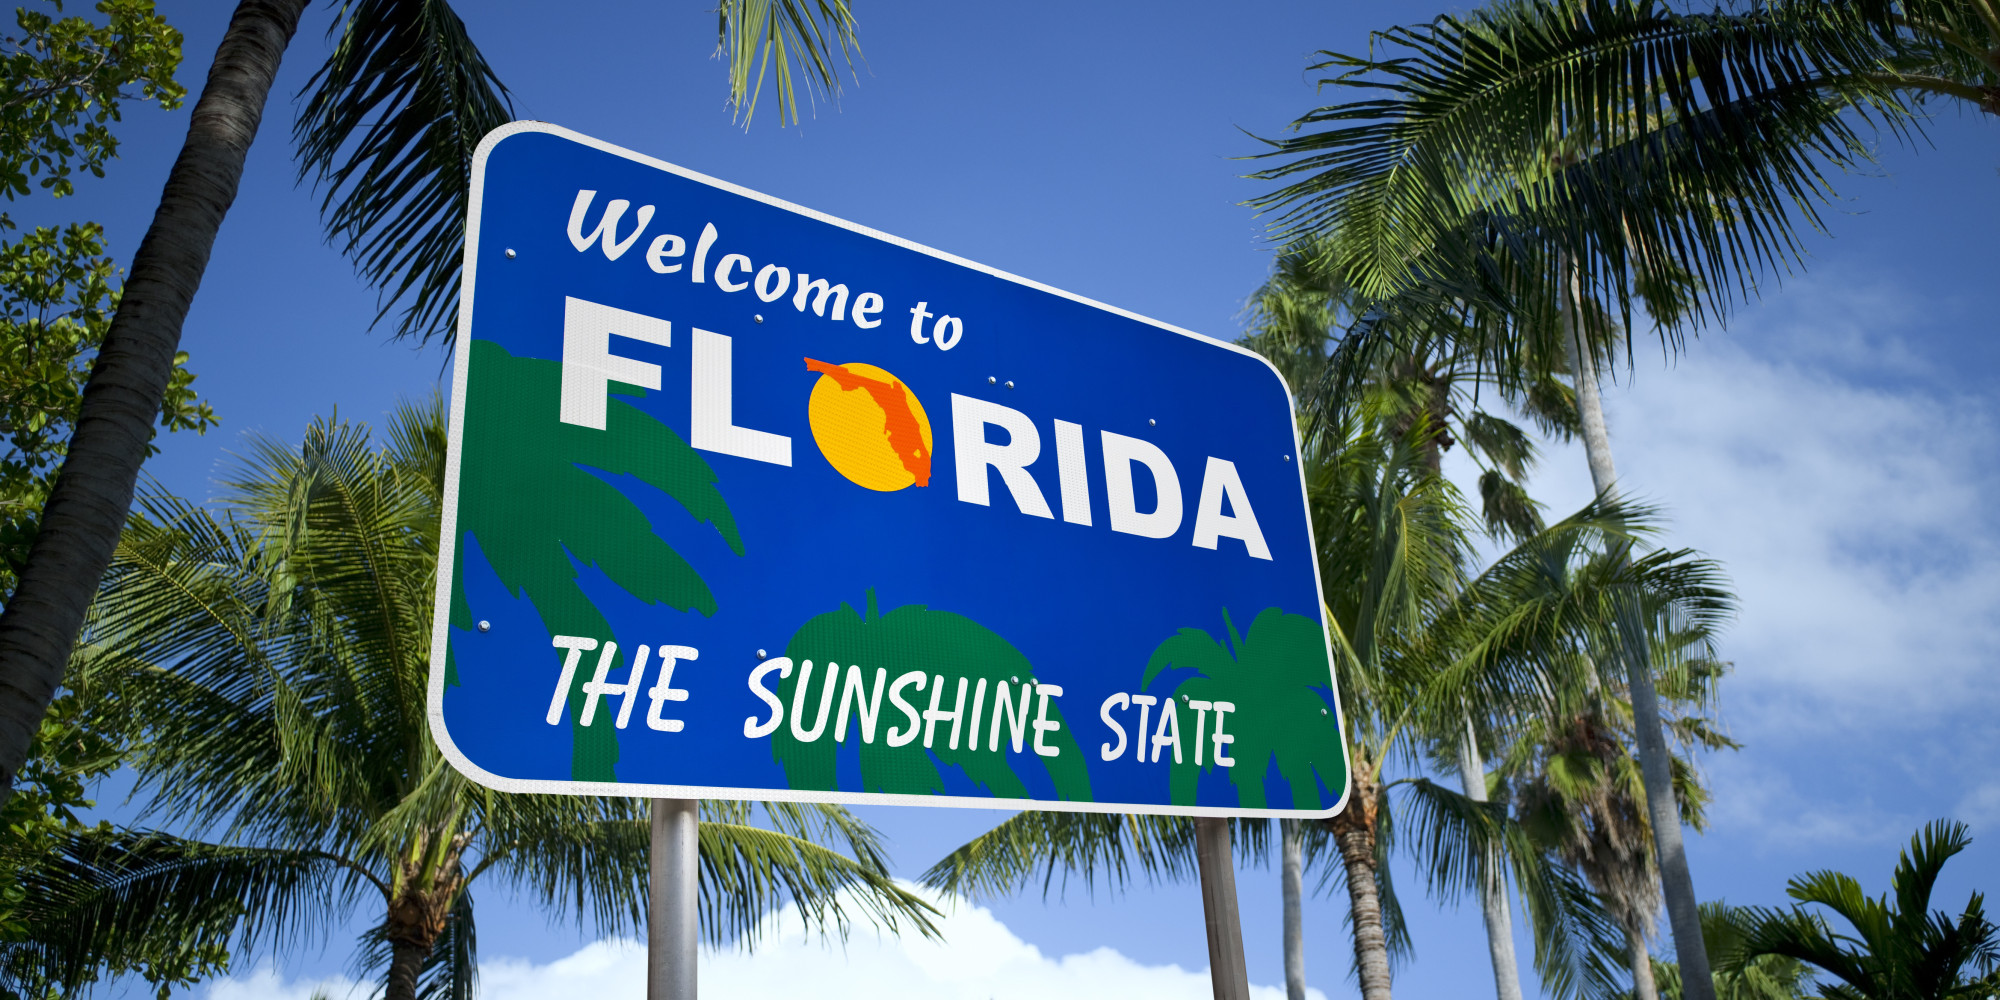 Florida businesses need a small business loan during tourism season